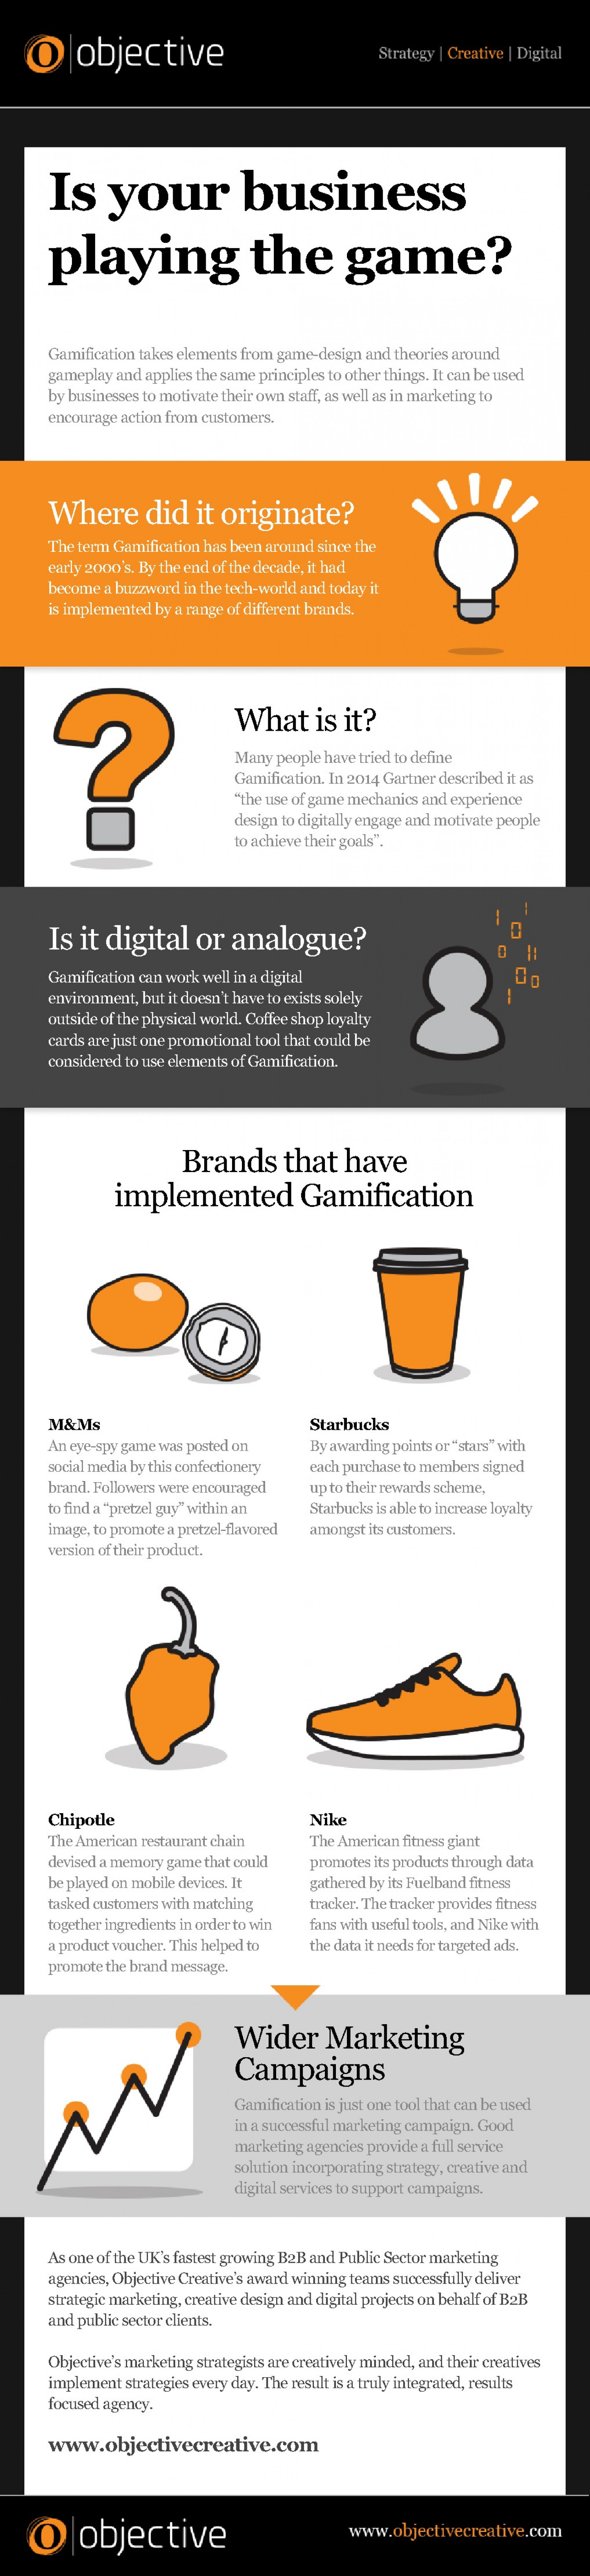 Is Your Business Playing the Game? Infographic